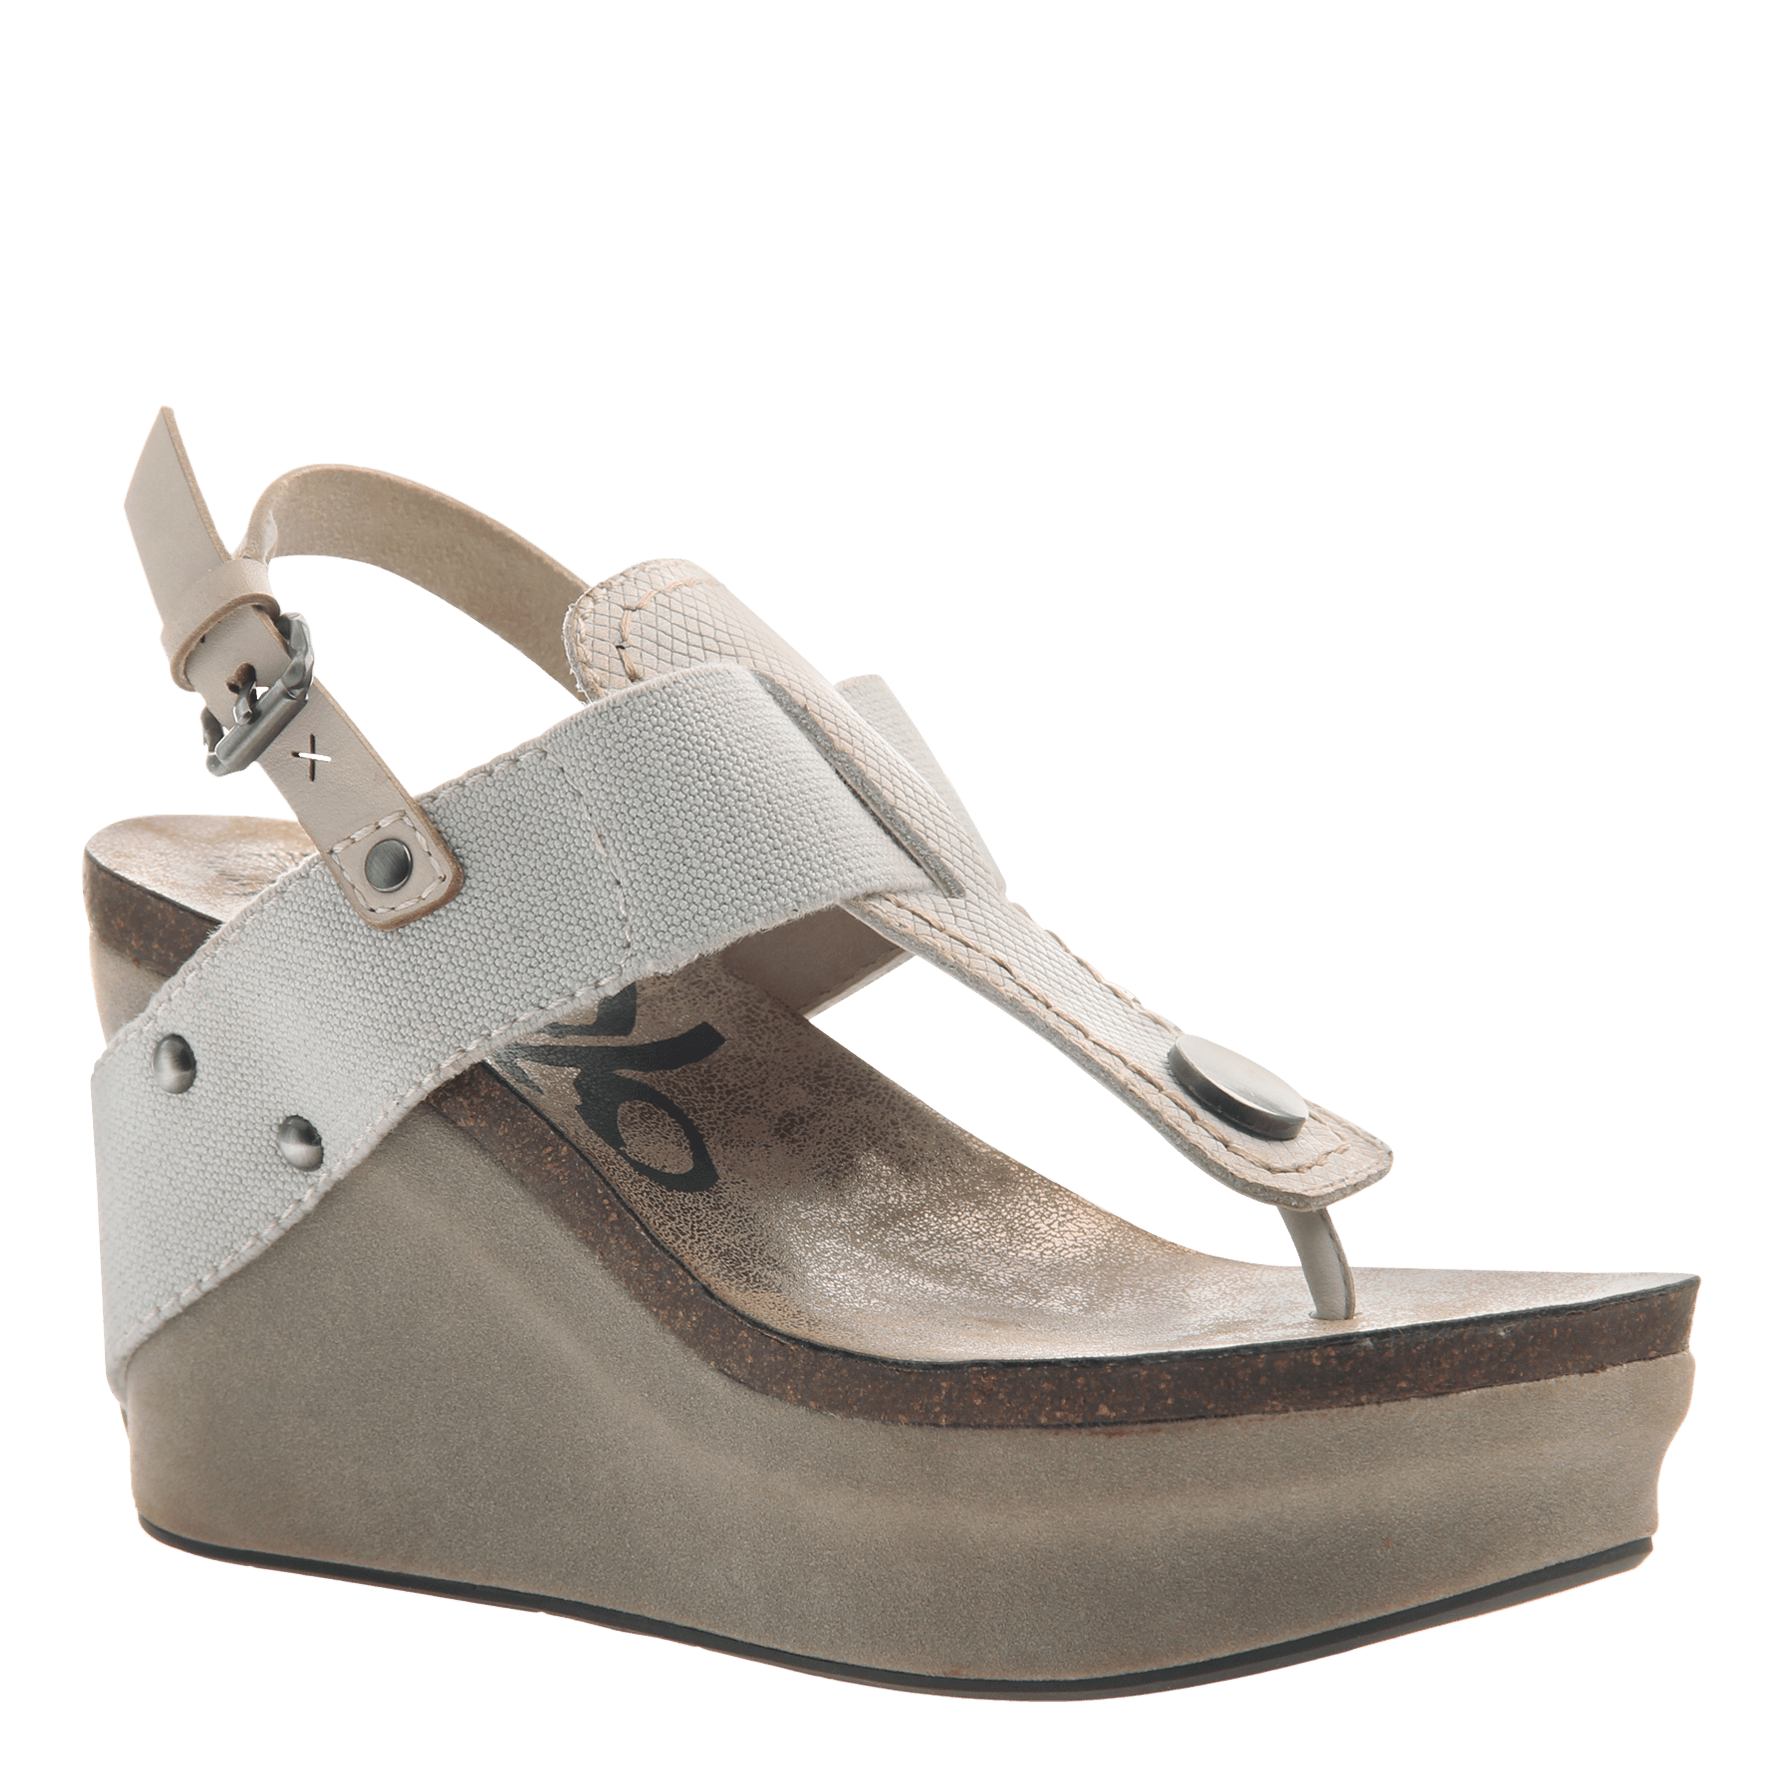 b494f08617d6 Women s platform wedge Joyride in dove grey